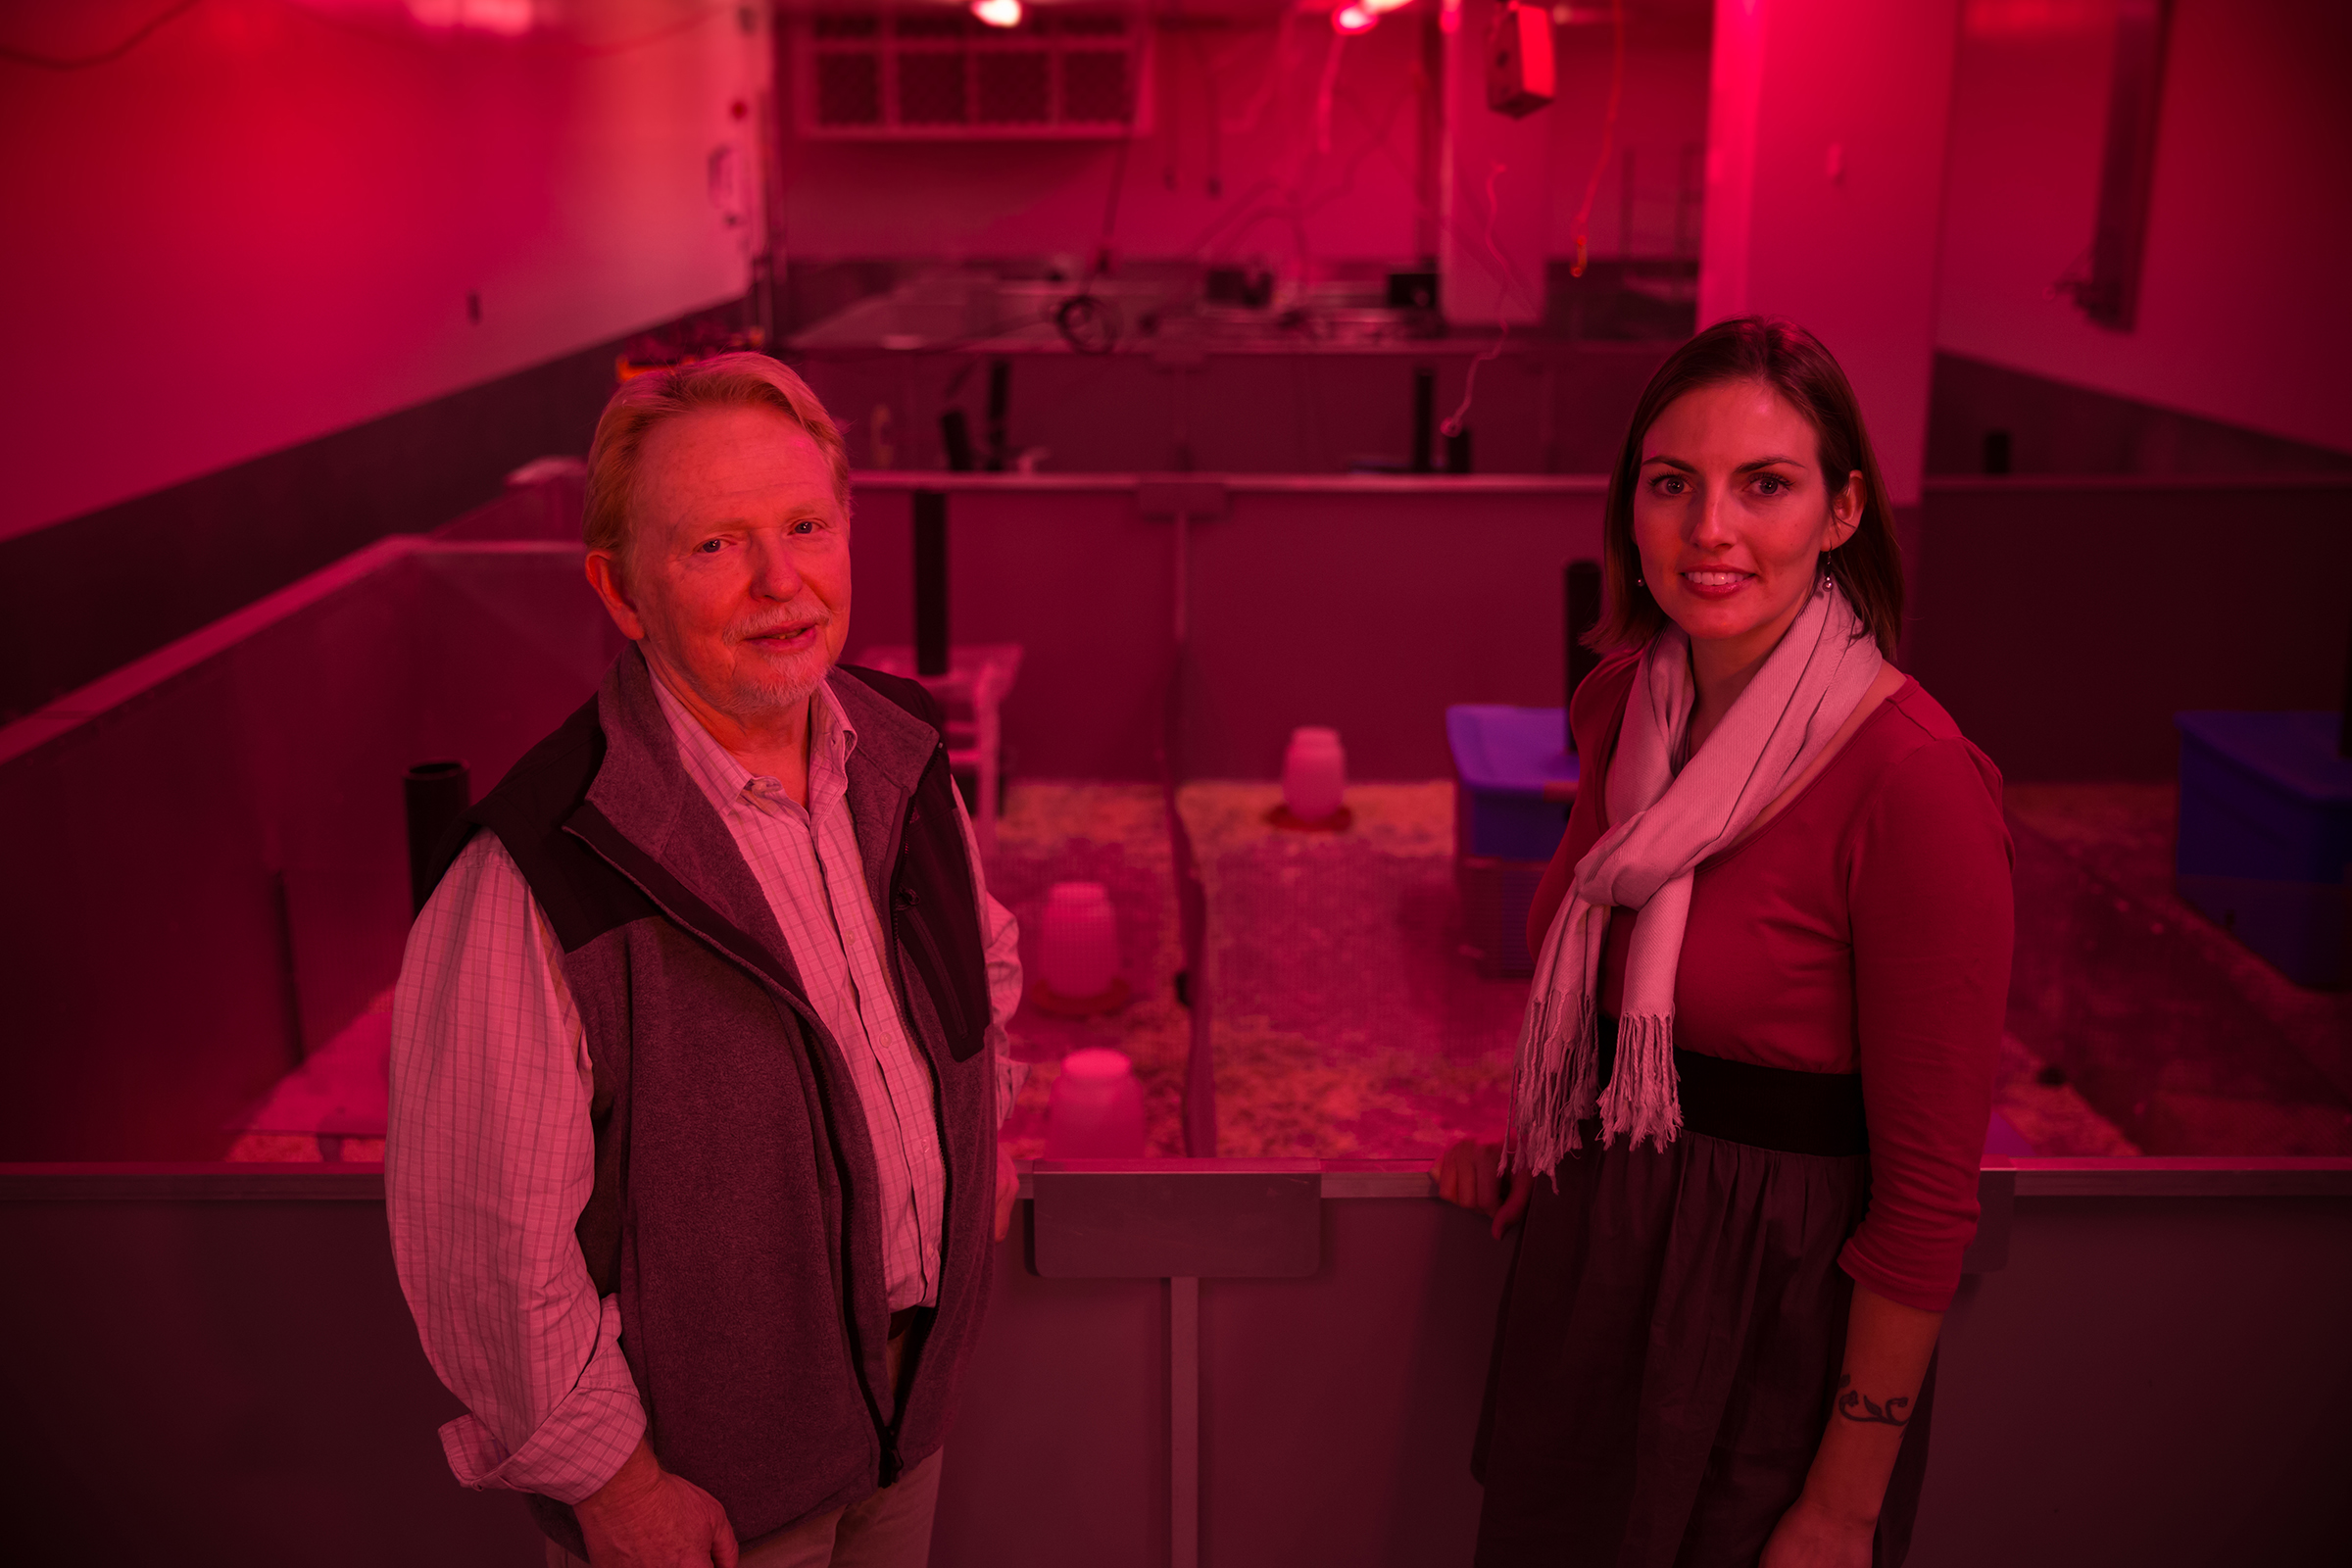 A University of Utah test detects hidden toxic effects by subjecting mice to competition for resources. University of Utah biology professor Wayne K. Potts and biologist Shannon M. Gaukler, who recently completed a doctoral degree at the U, stand in front of the test enclosure, illuminated in red light that mice perceive as nightfall.